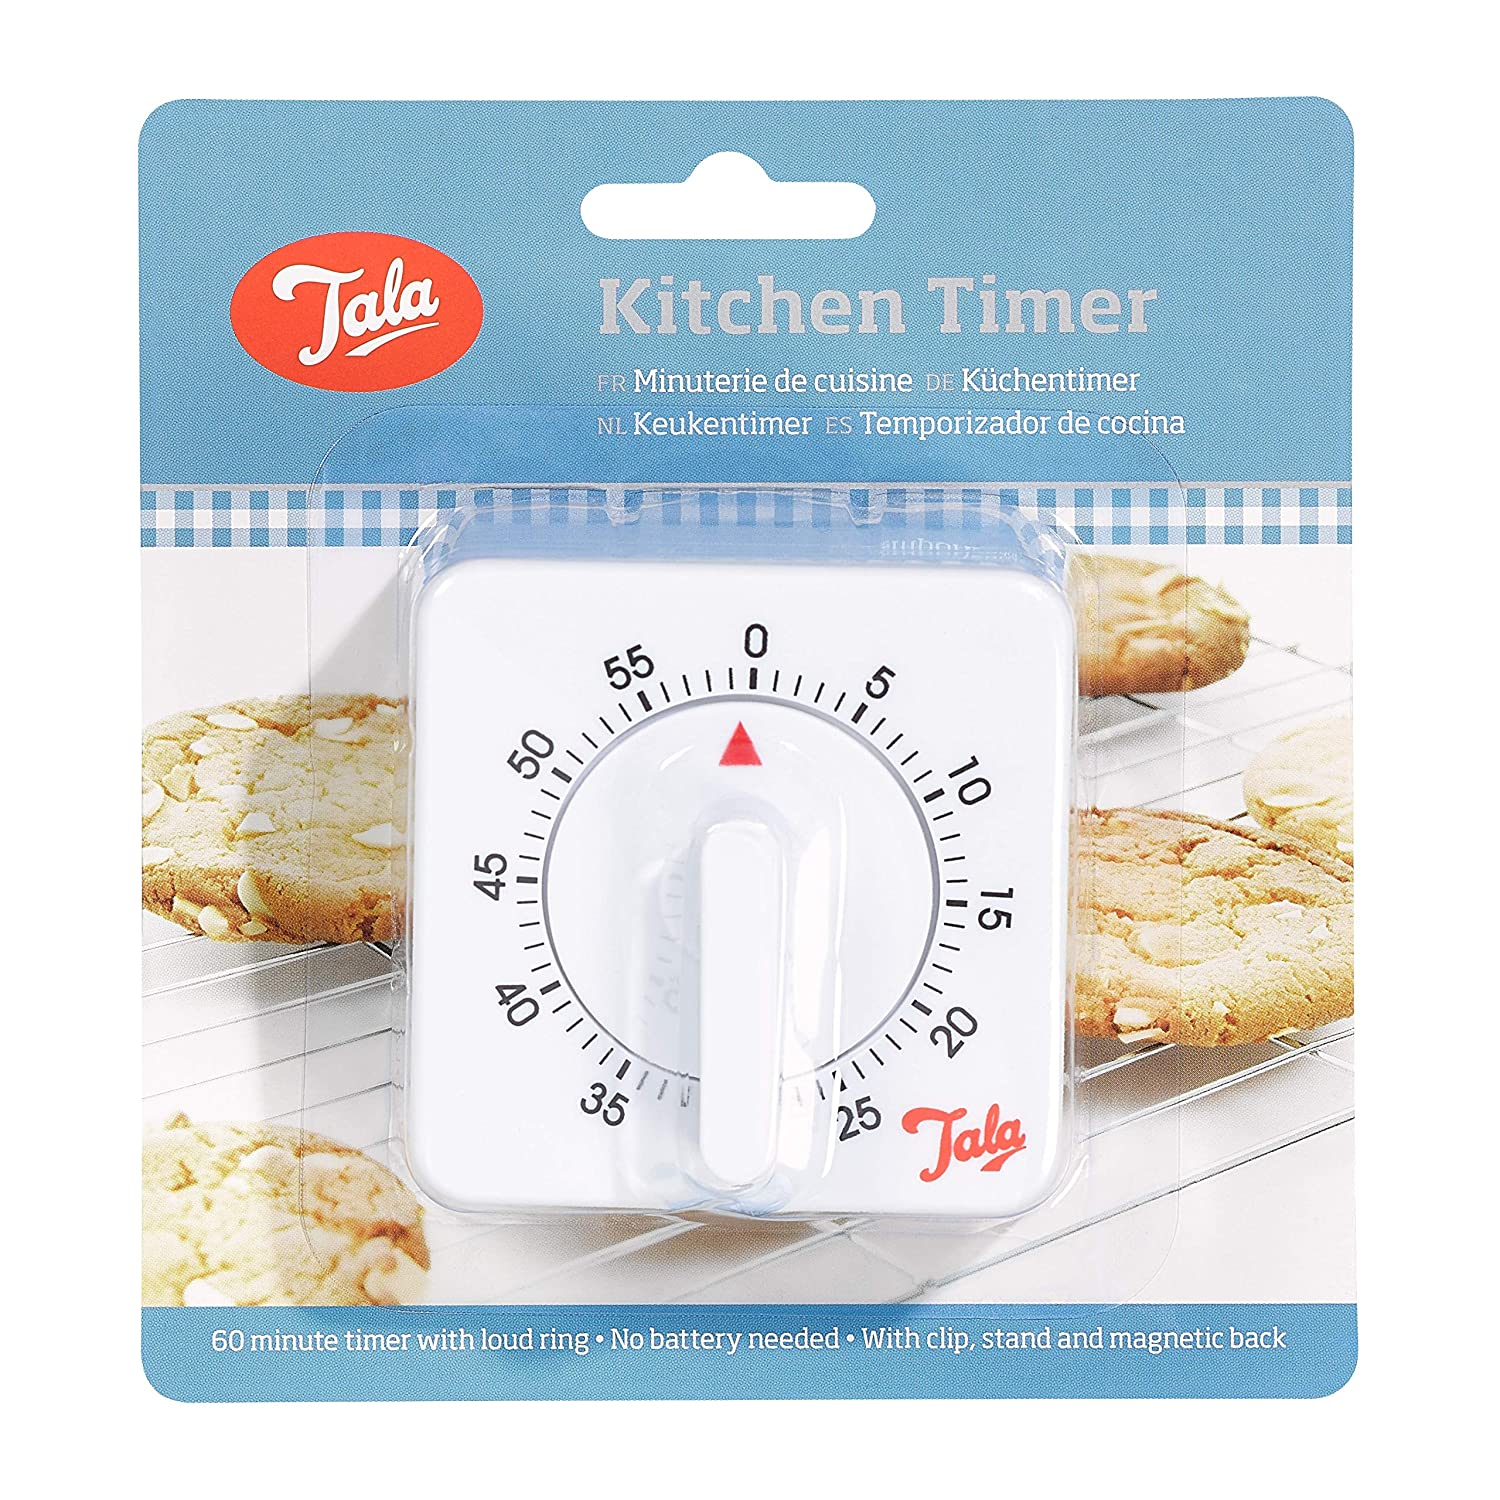 Amazon.com: White Kitchen Timer With Loud Ring: Kitchen & Dining